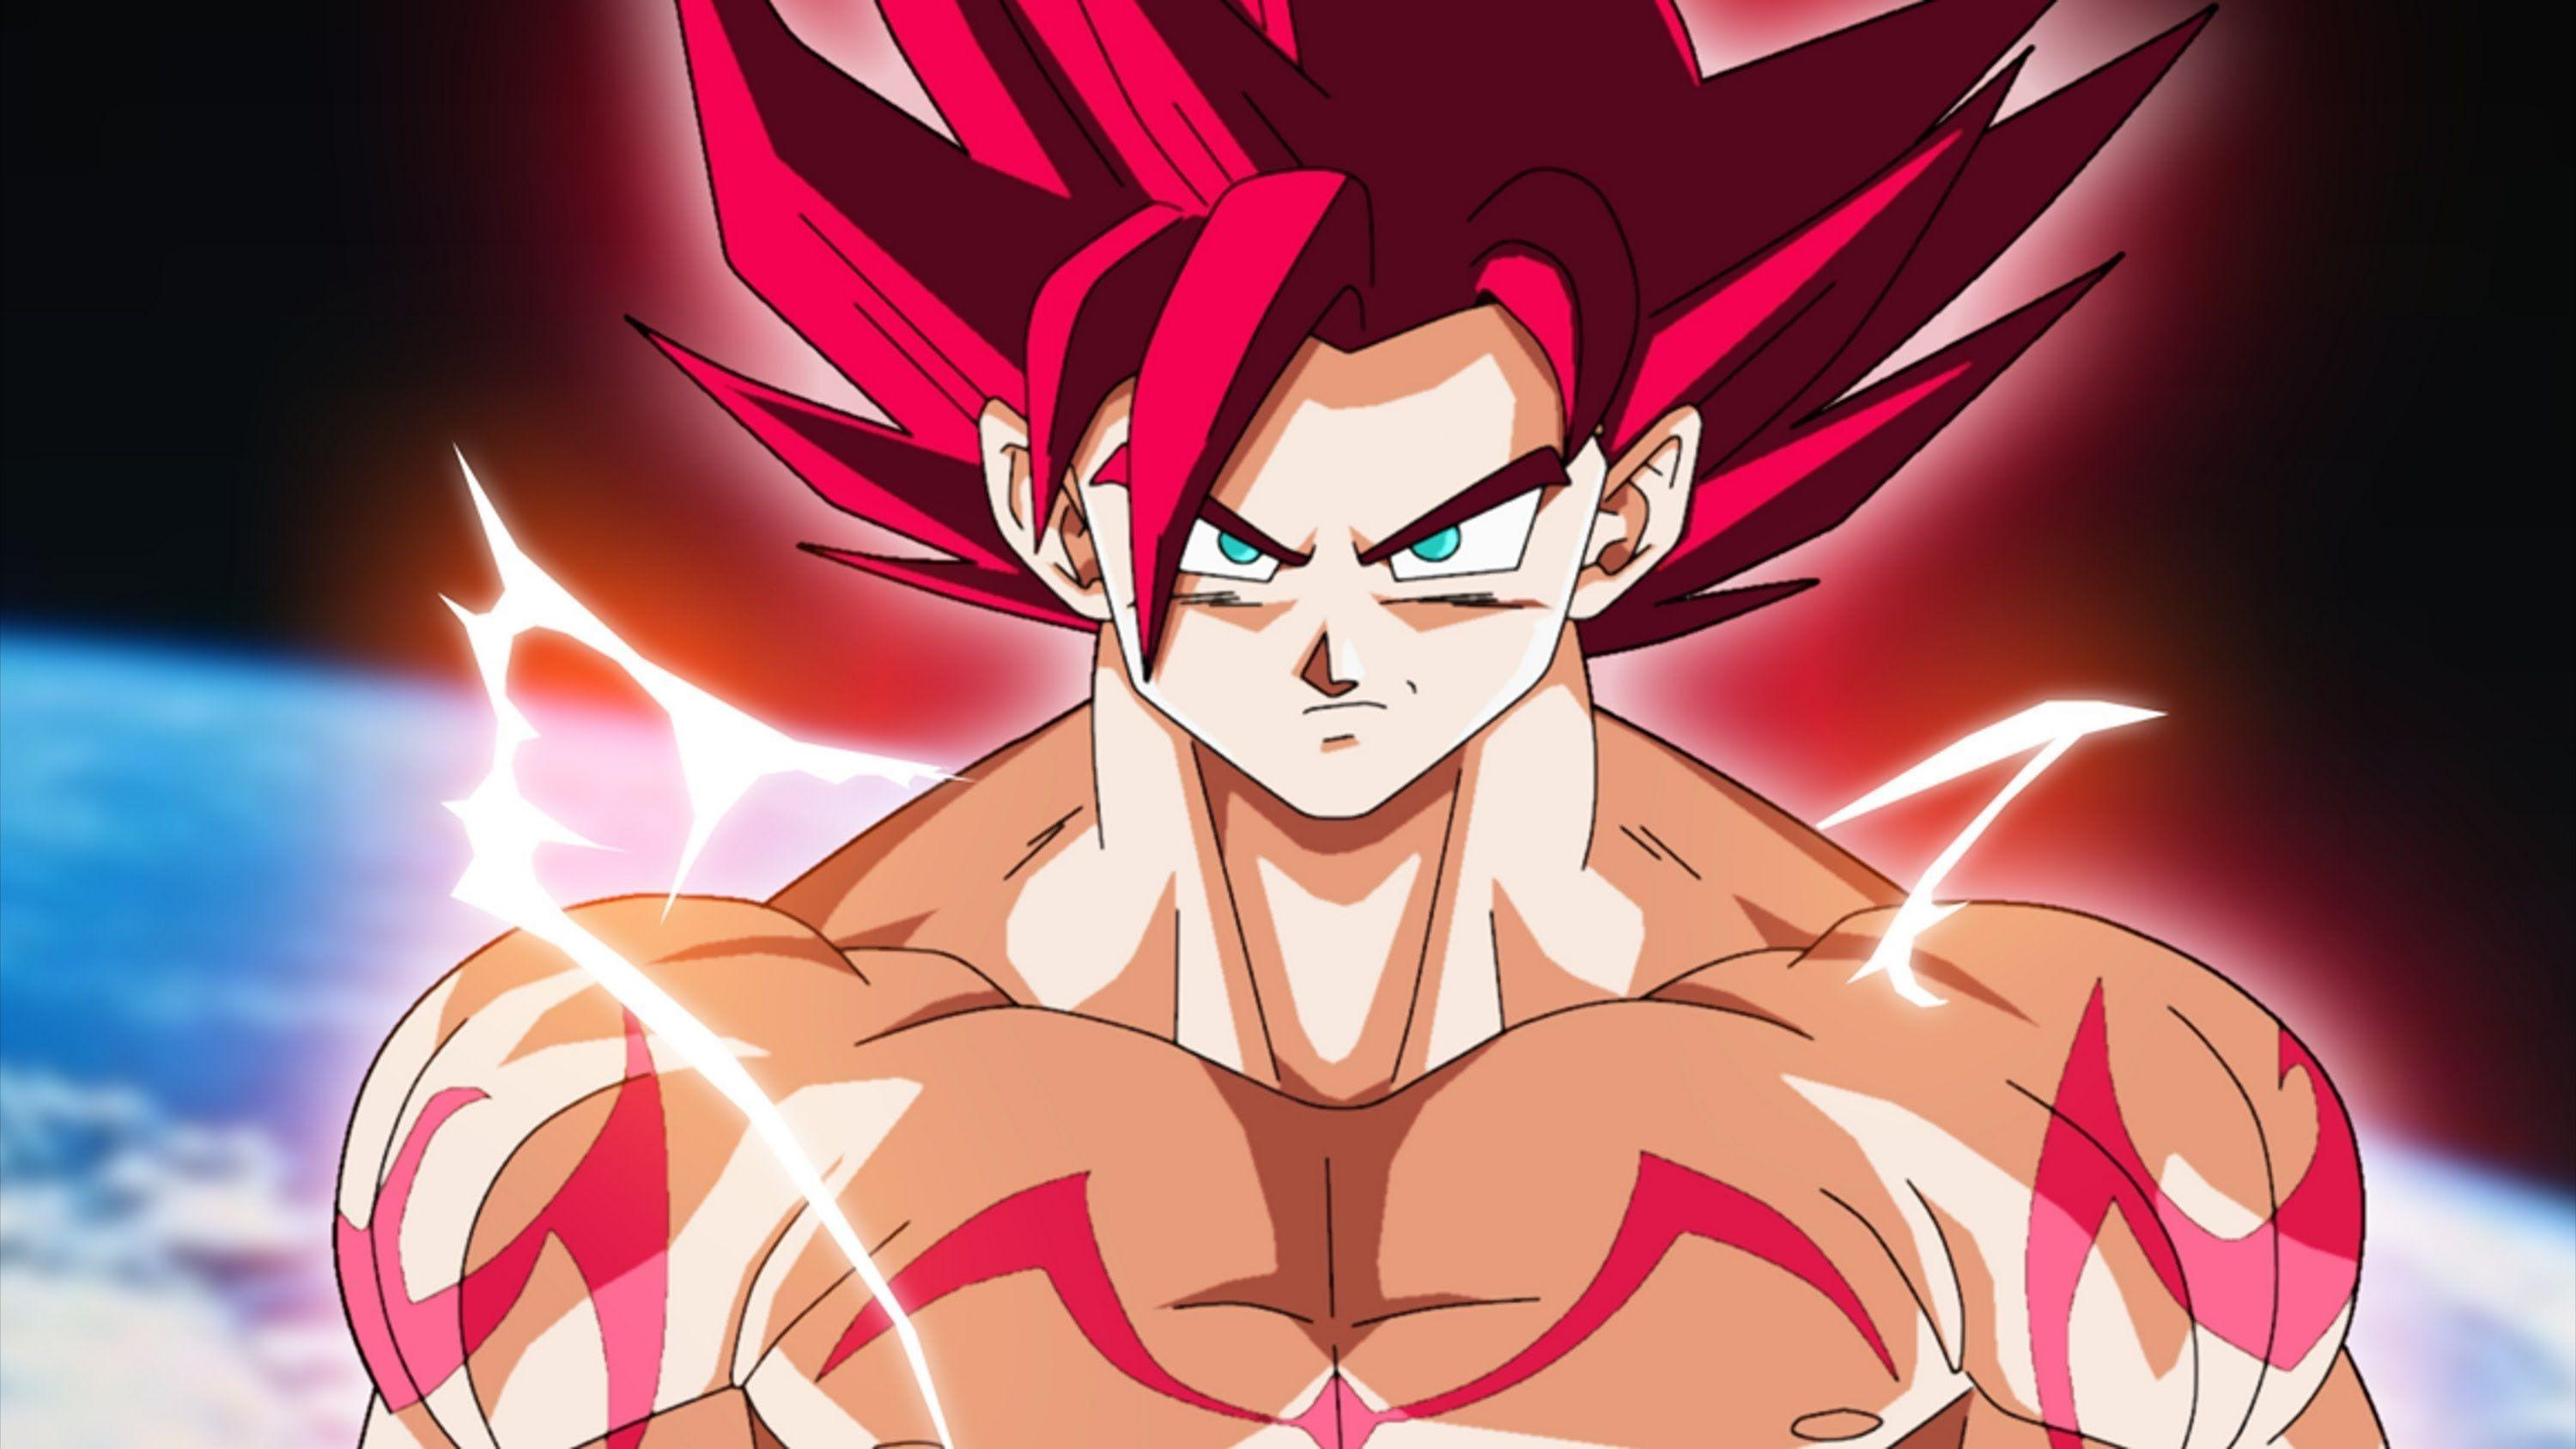 Dragon Ball Z Wallpapers Goku Super Saiyan God Wallpapers : Anime